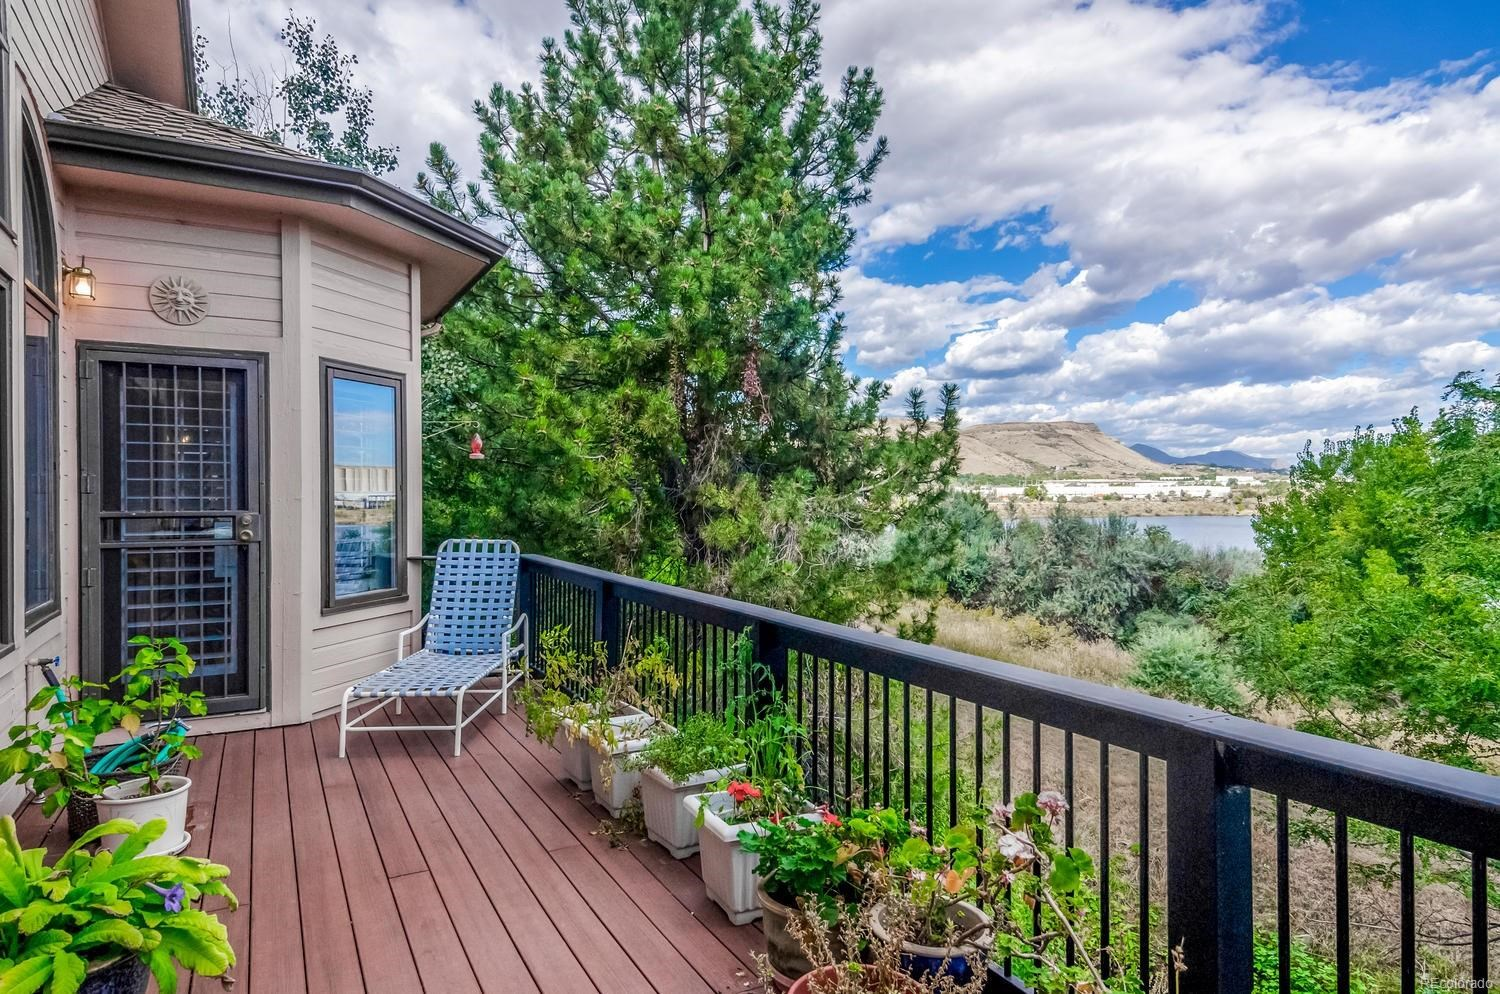 MLS# 4910470 - 1 - 15127  W 32nd Place, Golden, CO 80401